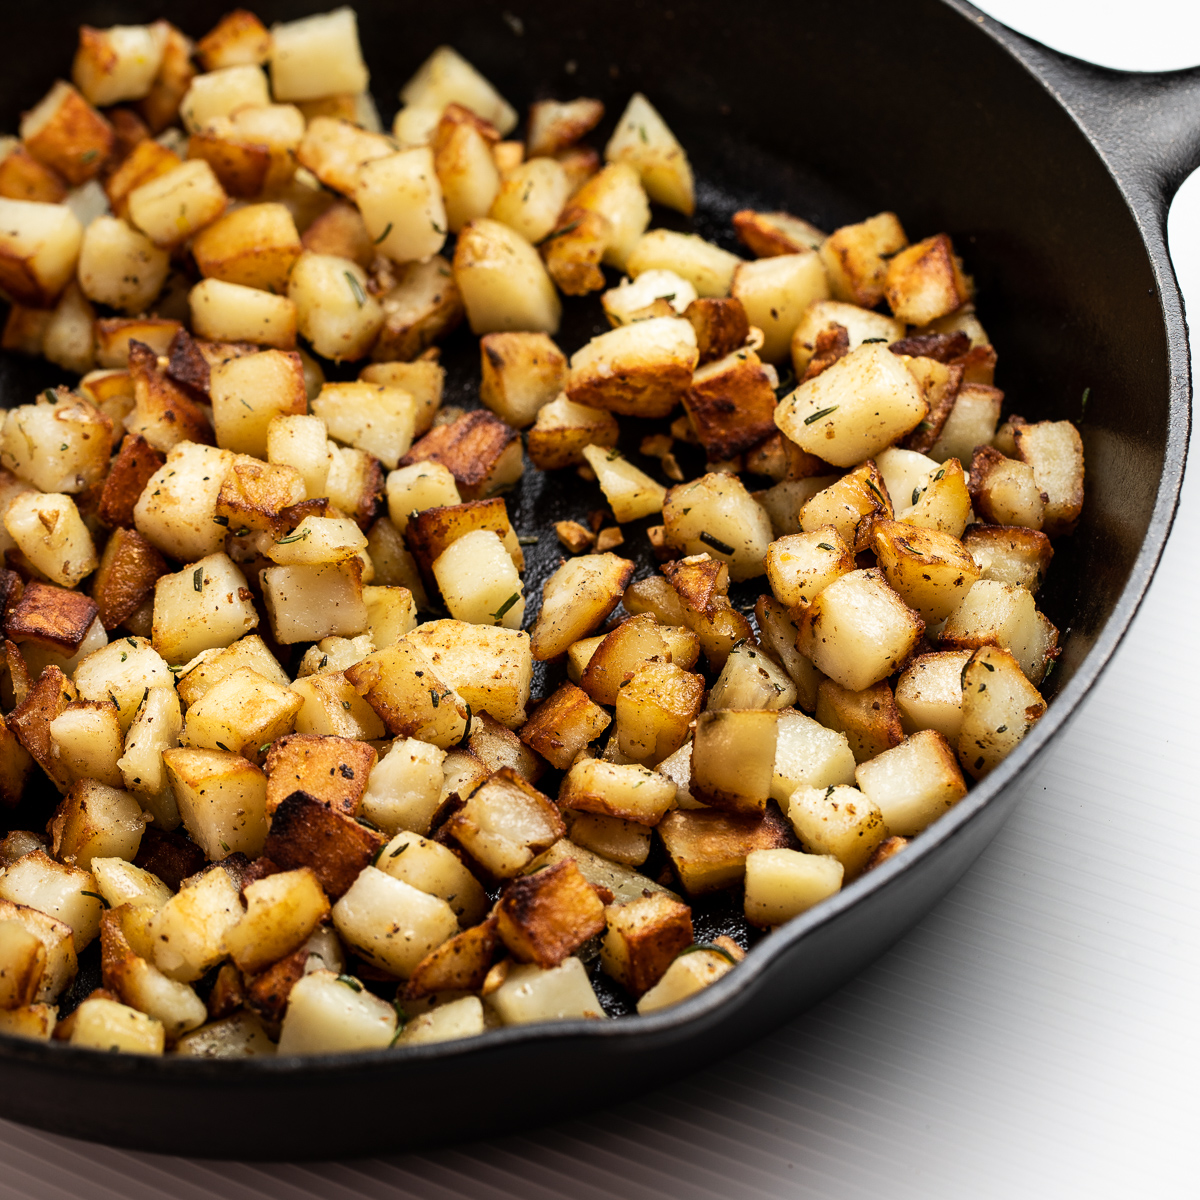 Crispy Skillet Fried Potatoes Sidewalk Shoes